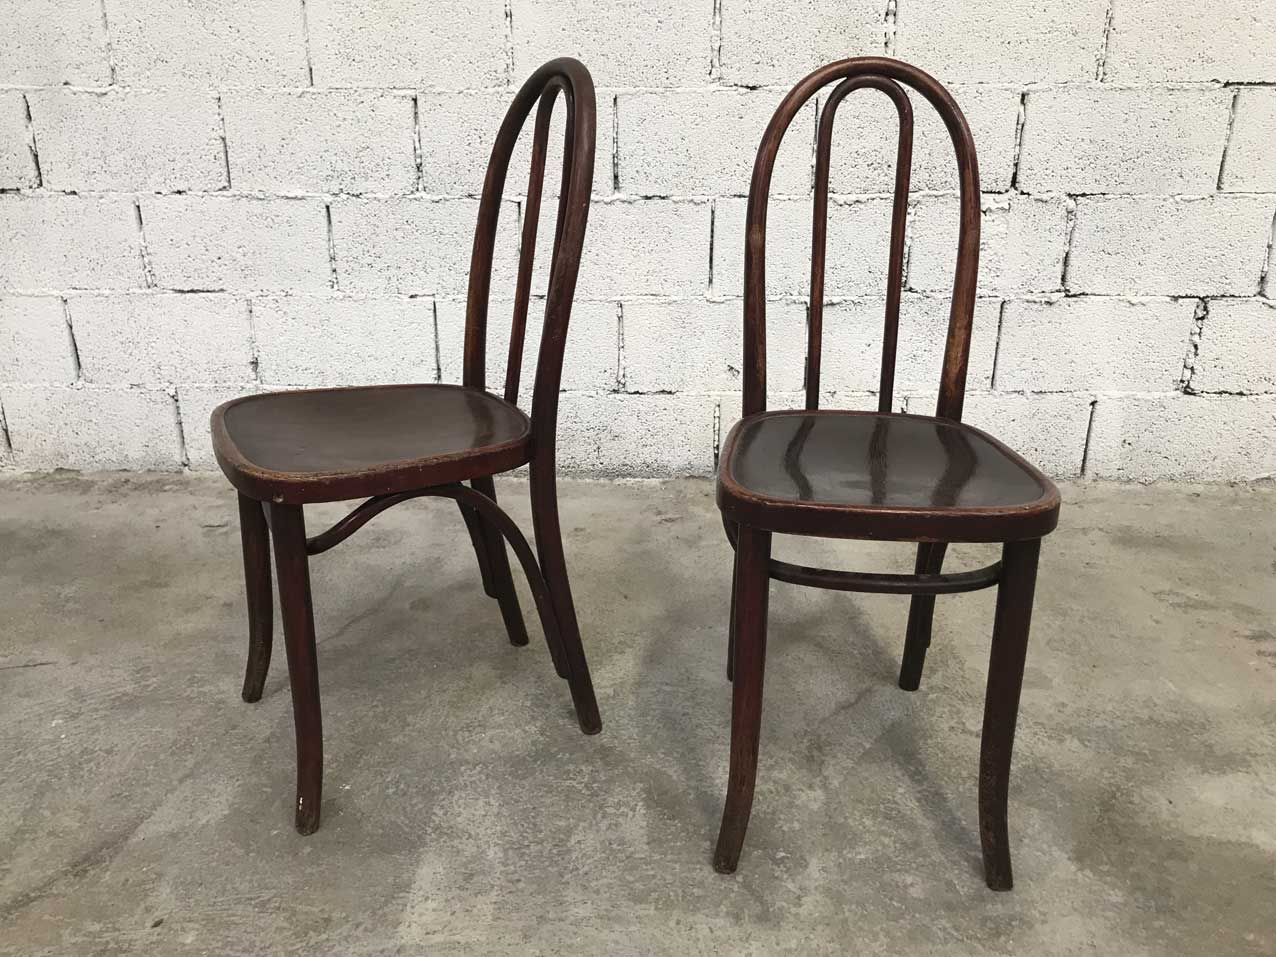 Vintage Bistro Chairs from Thonet, Set of 6 - Vintage Bistro Chairs From Thonet, Set Of 6 For Sale At Pamono